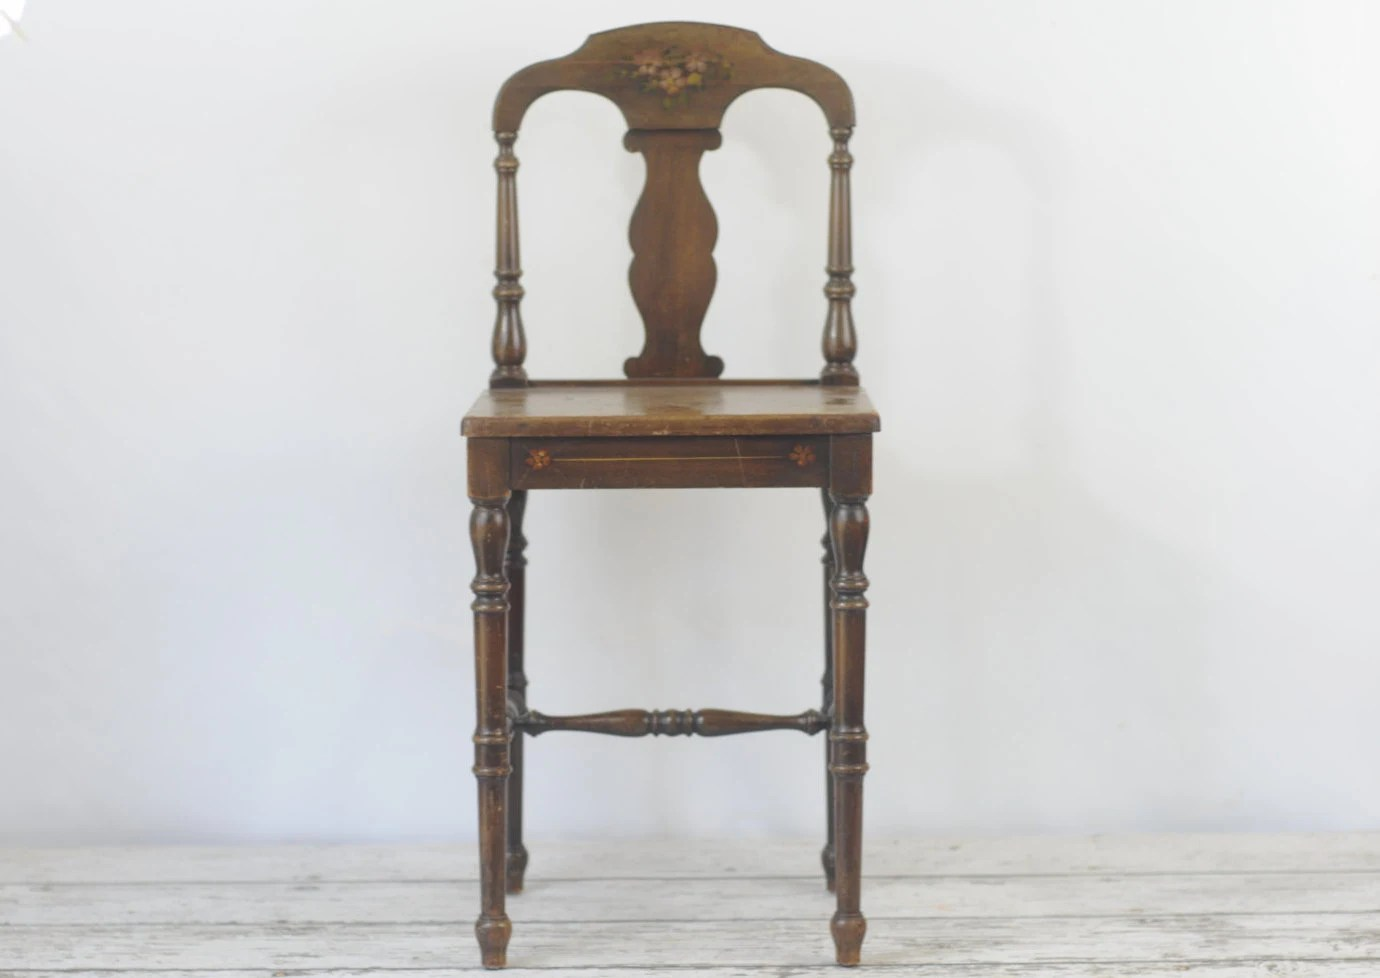 Wooden Vanity Chair Antique Vintage Vanity Chair Wood Vanity Chair Small Wood